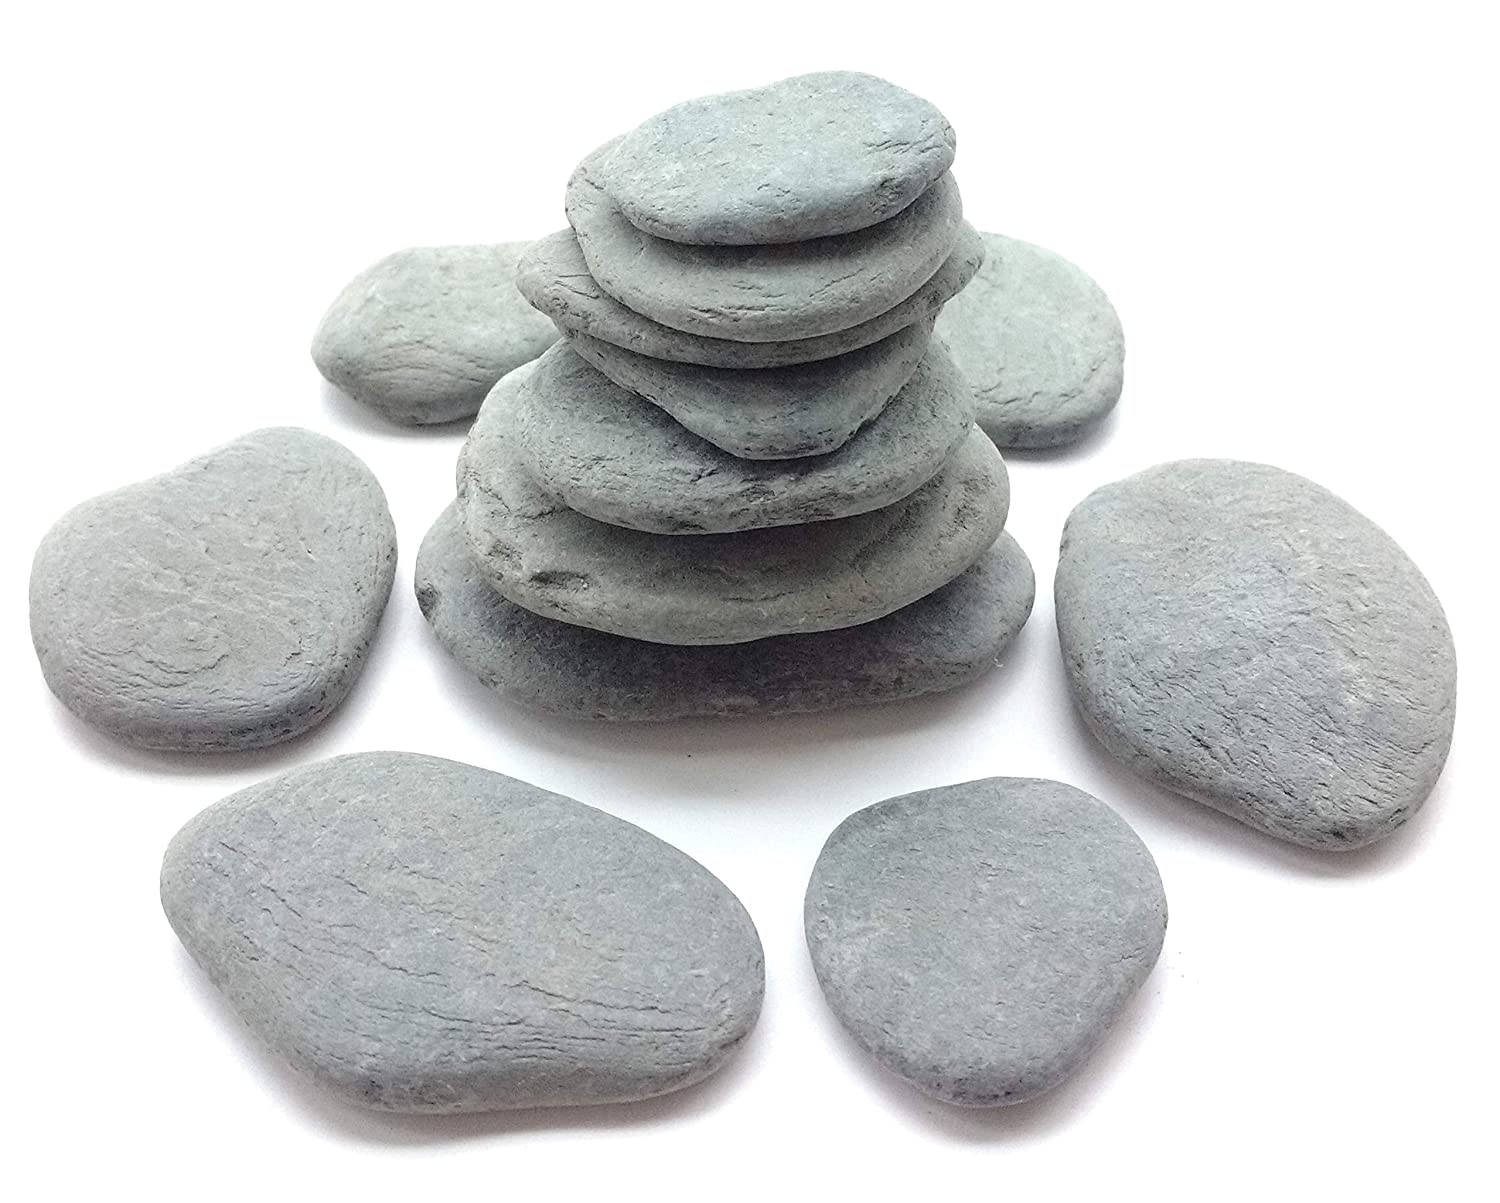 Capcouriers Flat Rocks - Smooth & Small Flat Rocks